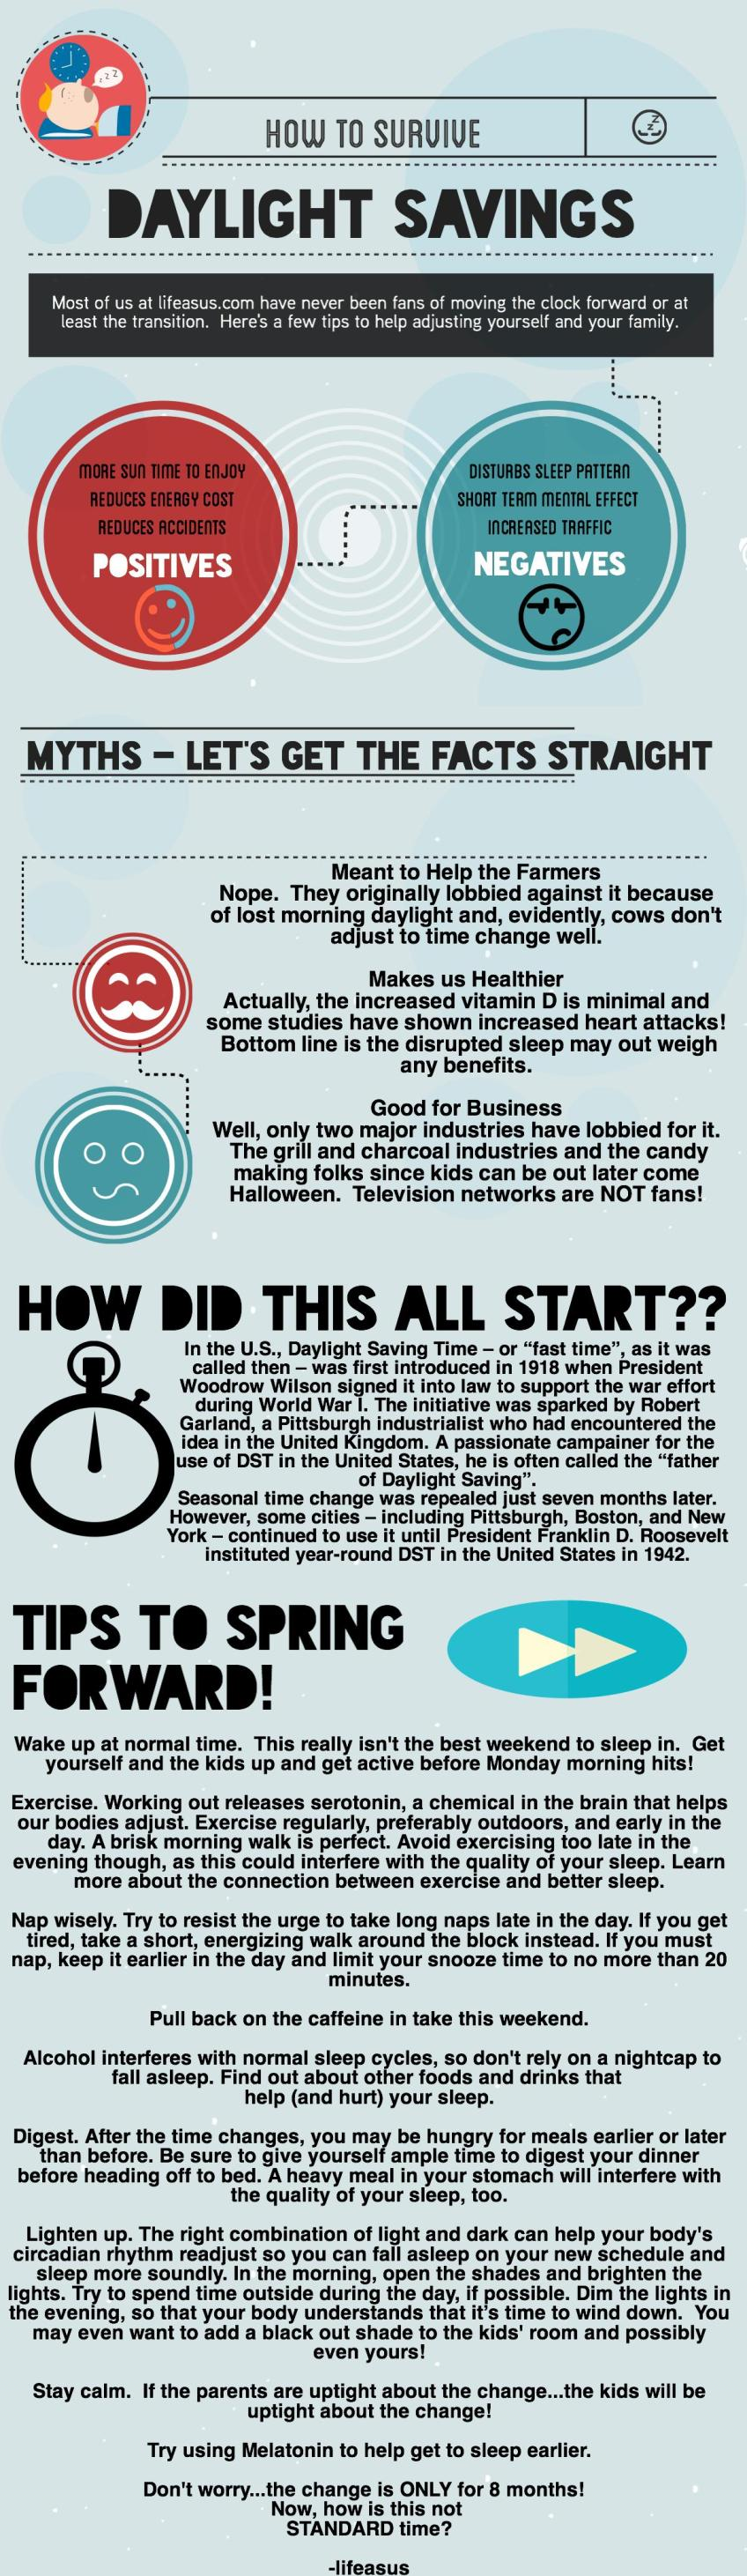 Some daylight savings facts and tips to ease the transition! (lifeasus.com) #daylightsavings #timechange #family